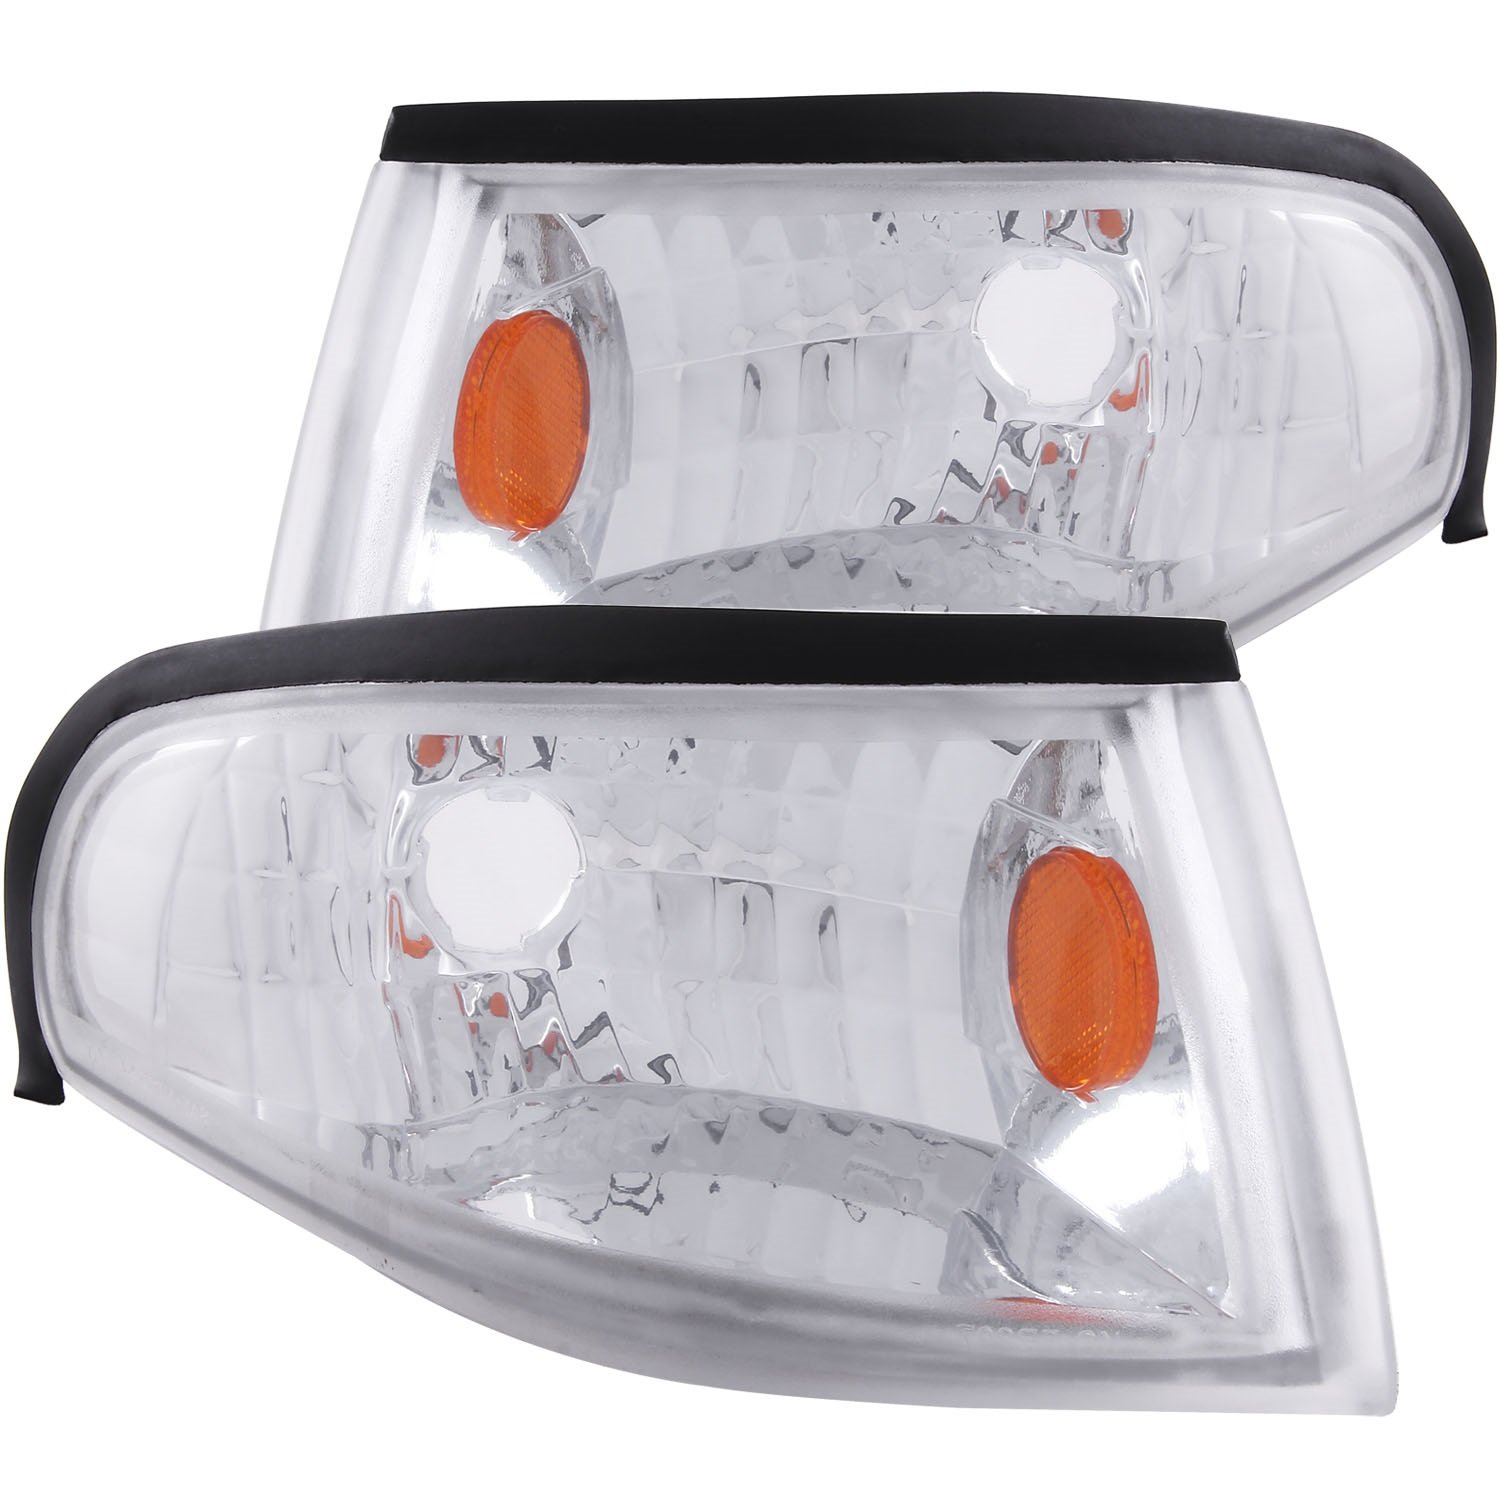 Anzo USA 521016 Ford Mustang Chrome Euro w/Amber Reflector Corner Light Assembly - (Sold in Pairs)